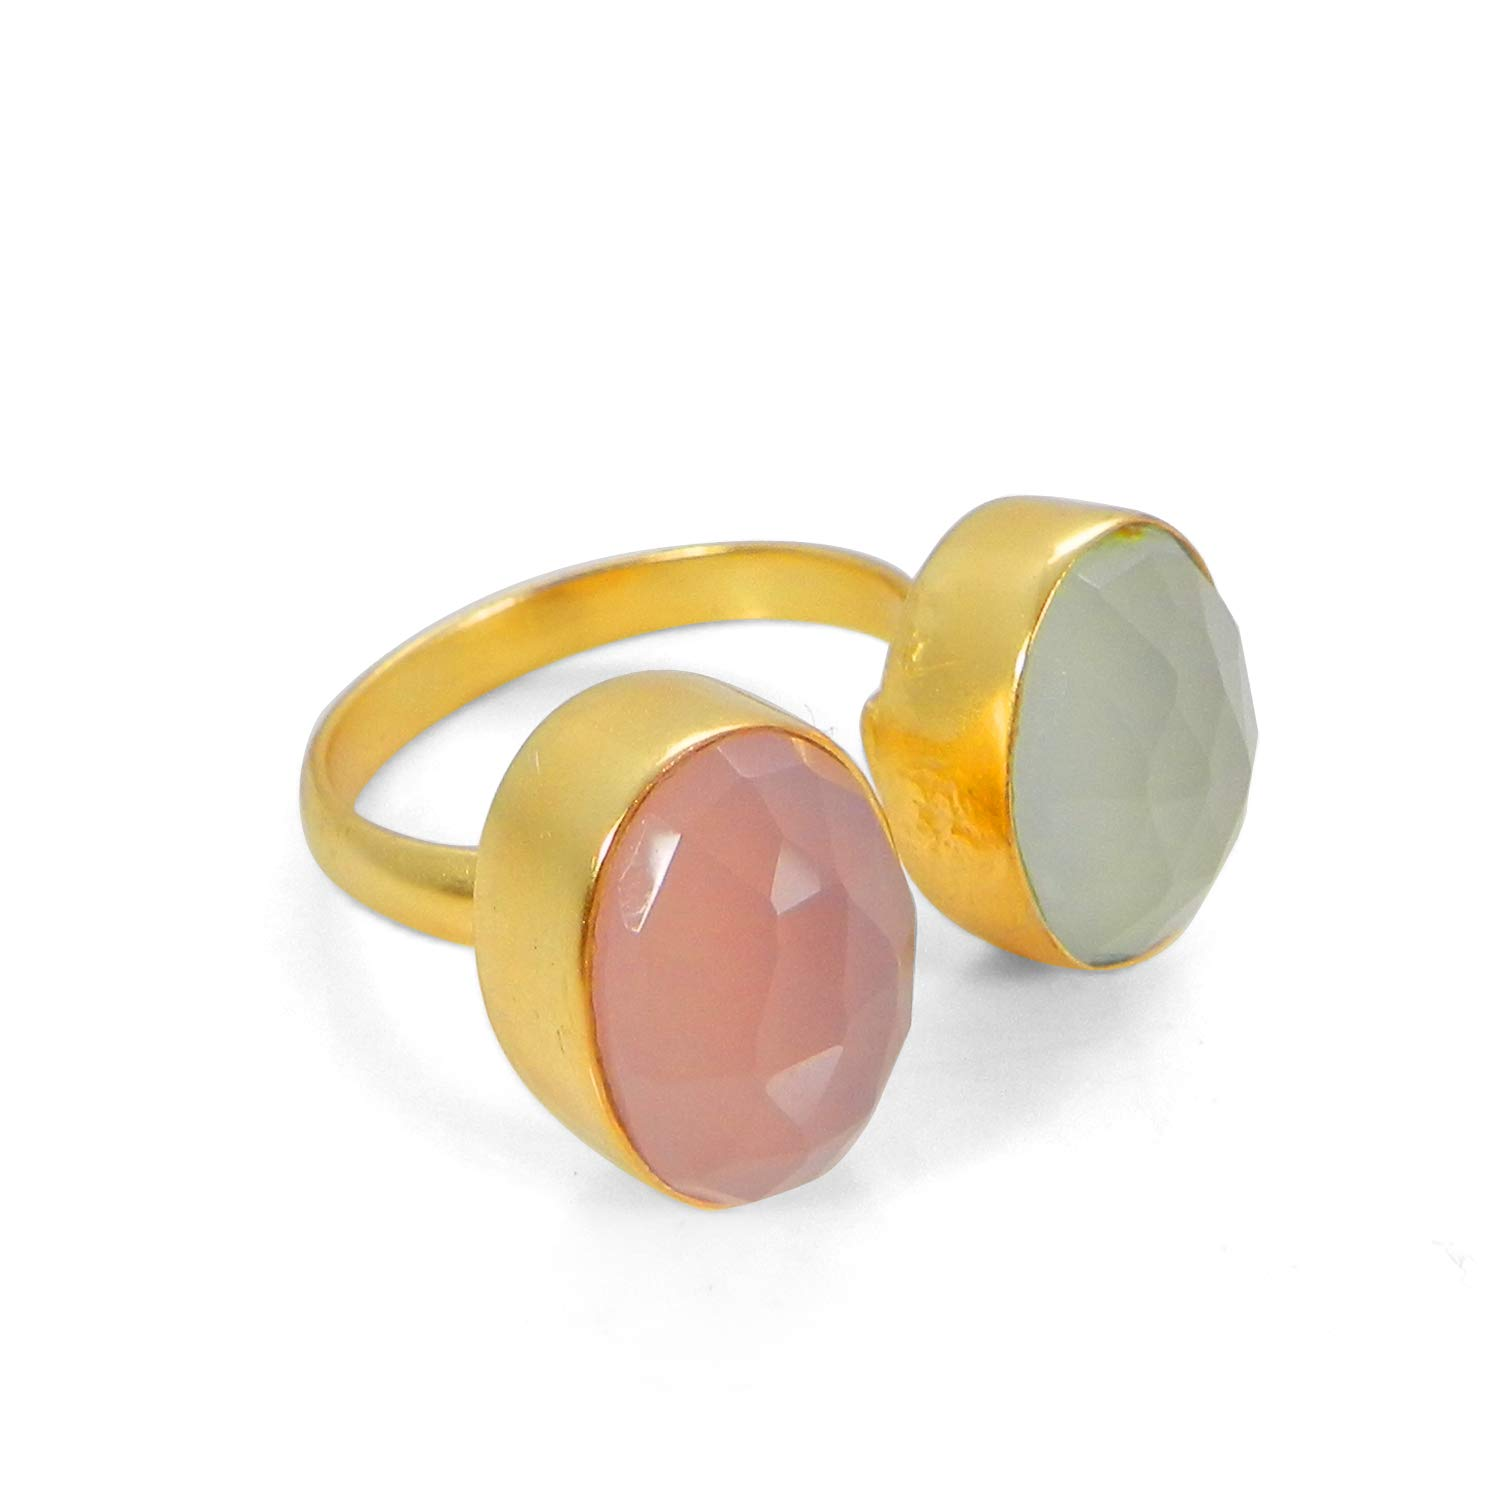 Gold Plated Jewelry Shilpi Impex 2 Gemstone Ring Pink Stone and Aqua Chalcedony Stone Jewelry